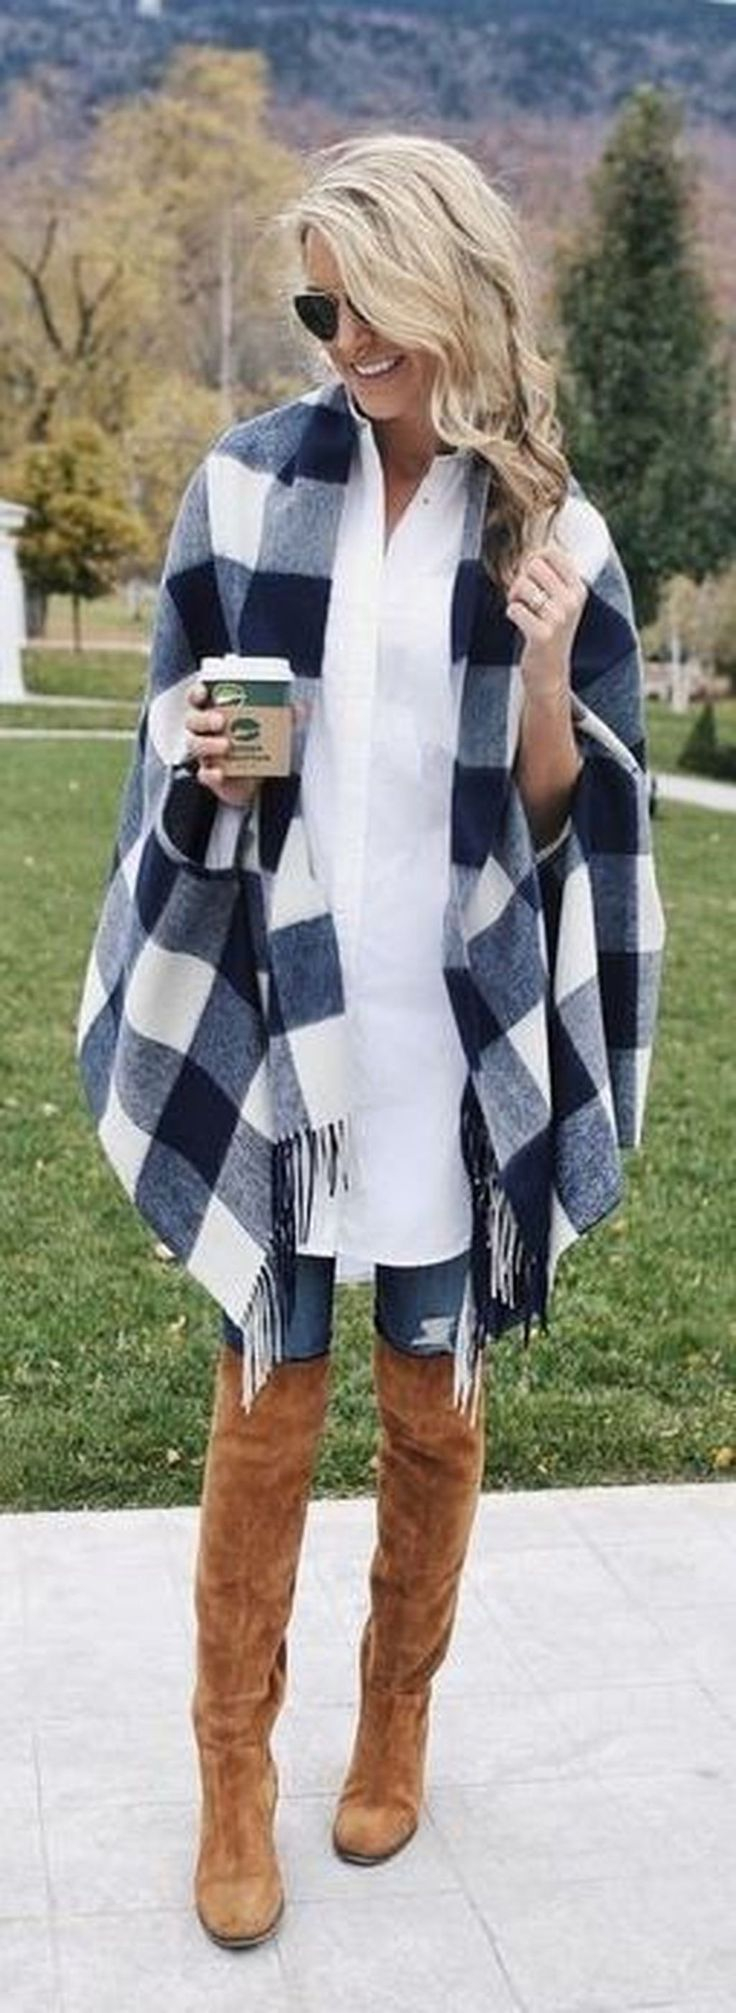 38 totally perfect winter outfits ideas you will fall in love with 27